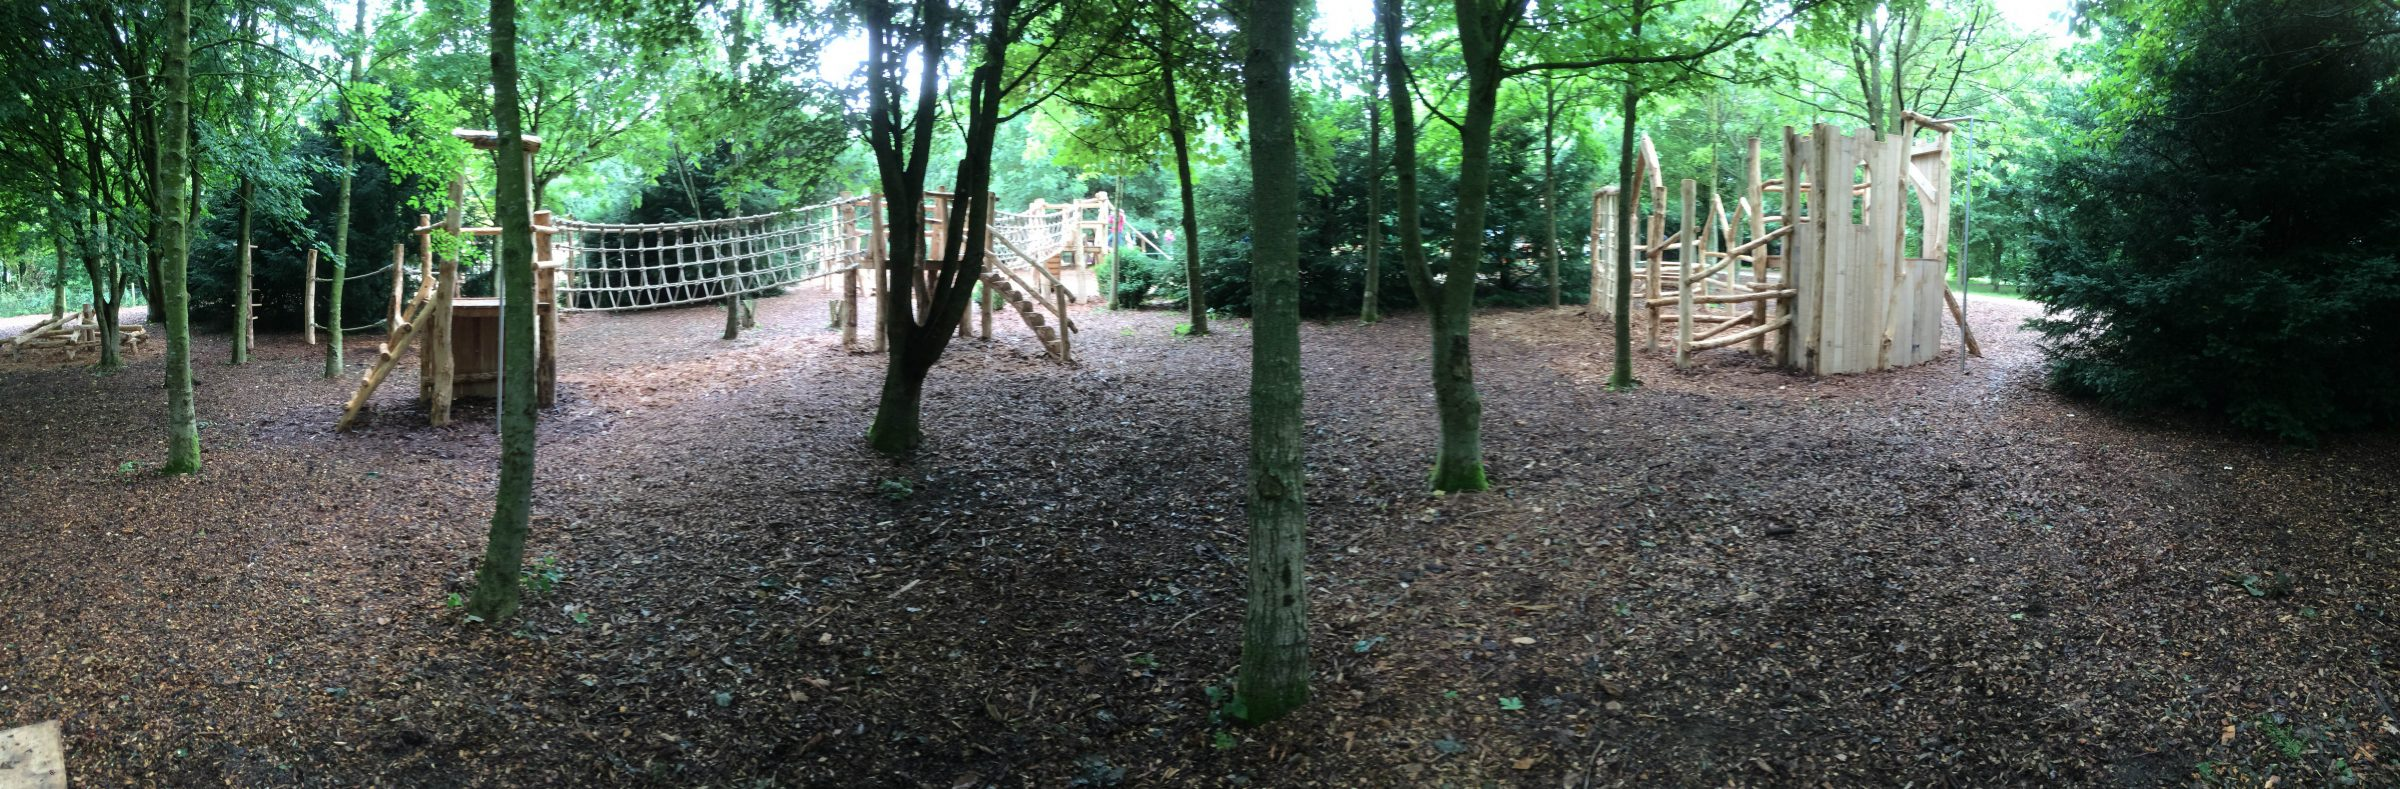 Forest Panorama Fountains Abbey And Studley Foyal Extensive Rustic Outdoor Woodland Play Area By Flights Of Fantasy